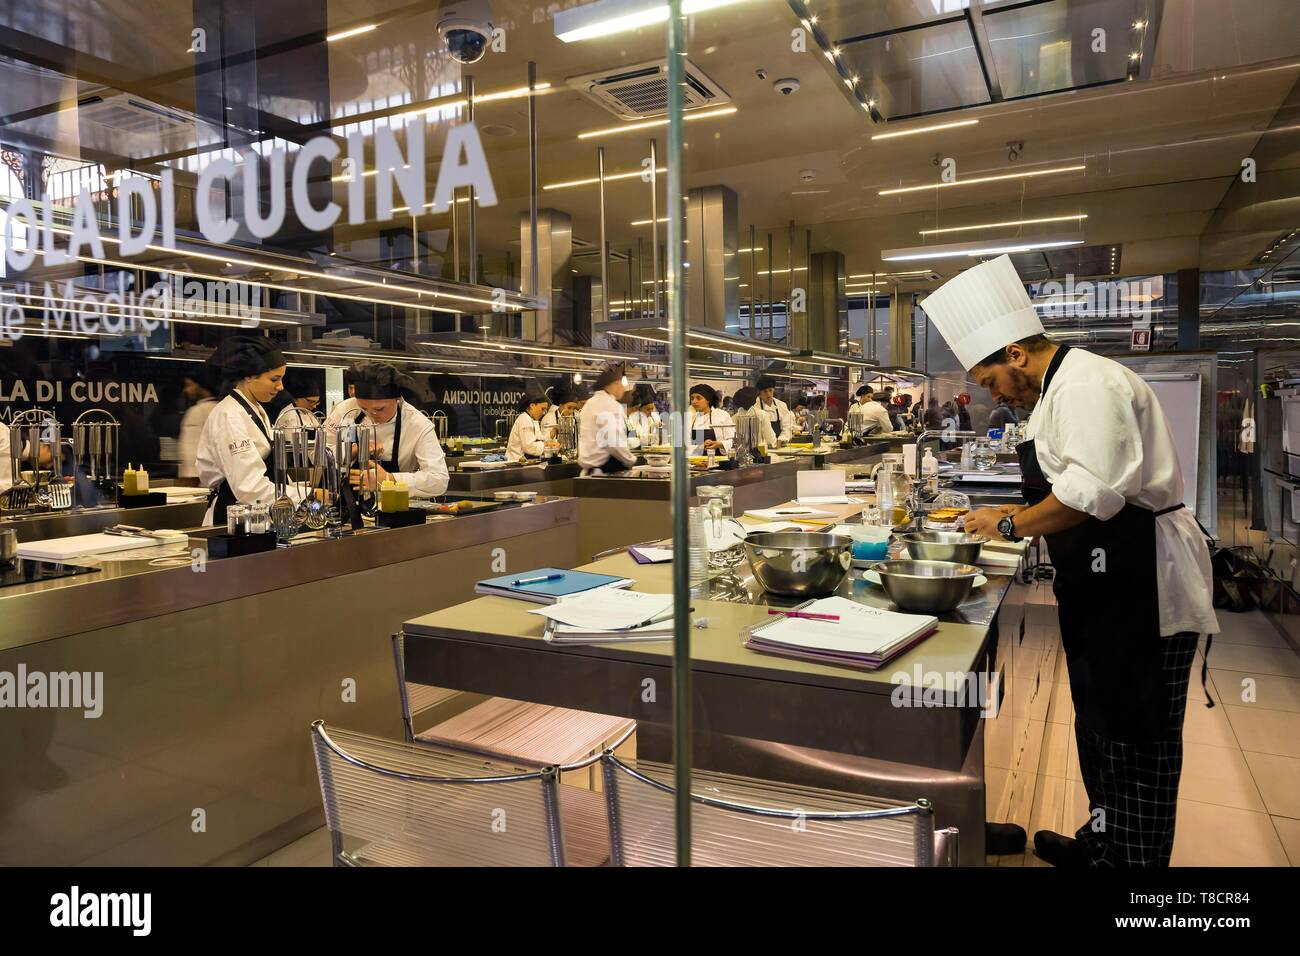 Italy, Tuscany, Florence, historic centre listed as World Heritage by UNESCO, Mercato Centrale, cooking school, Lorenzo de 'Medici - Stock Image